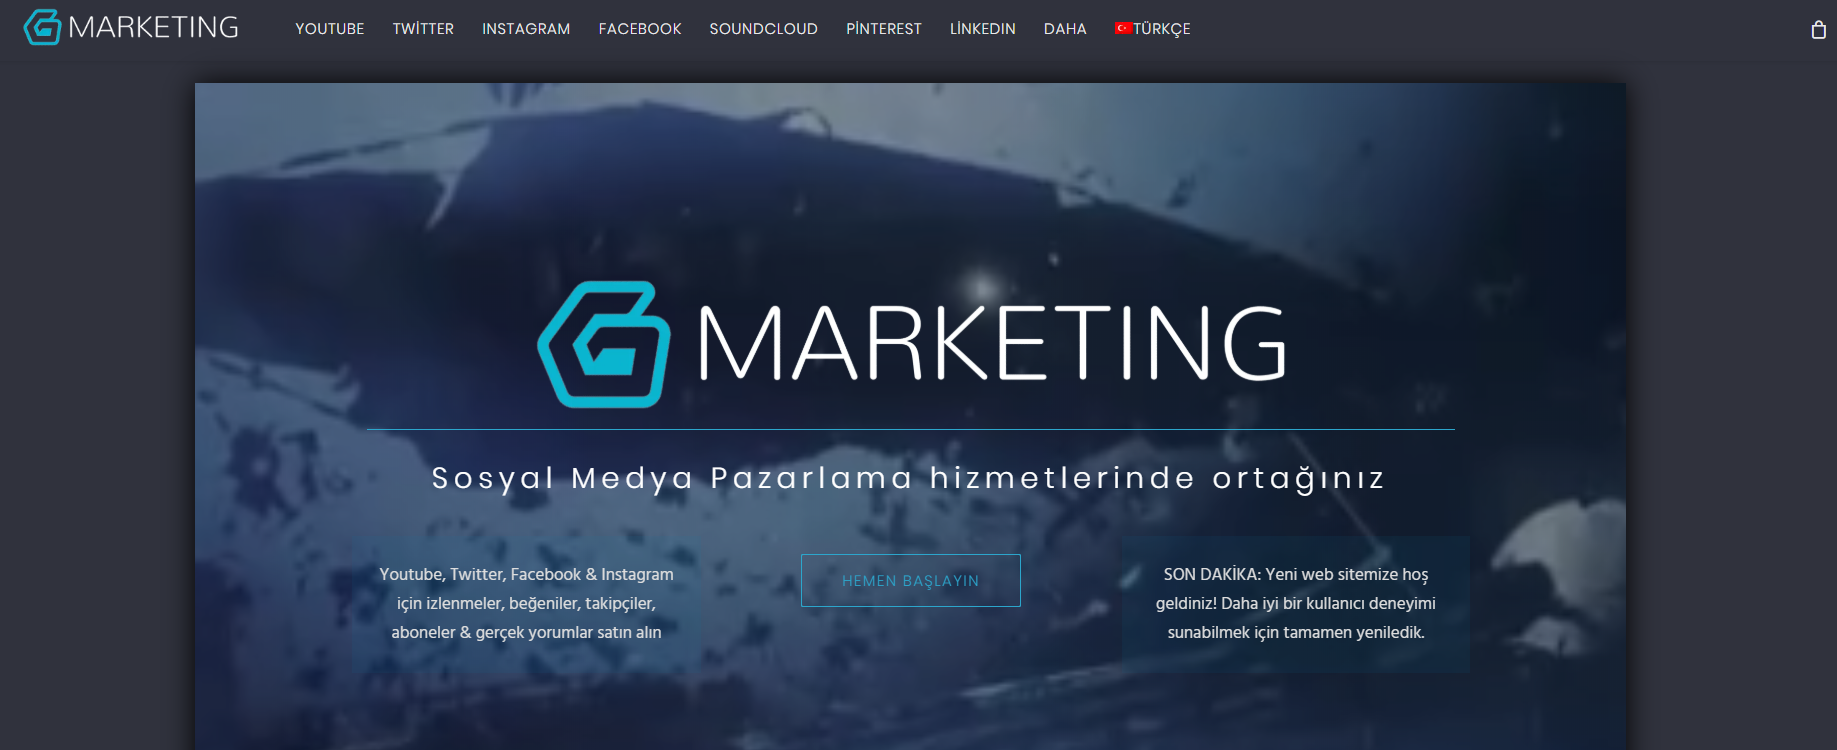 Galaxy Marketing